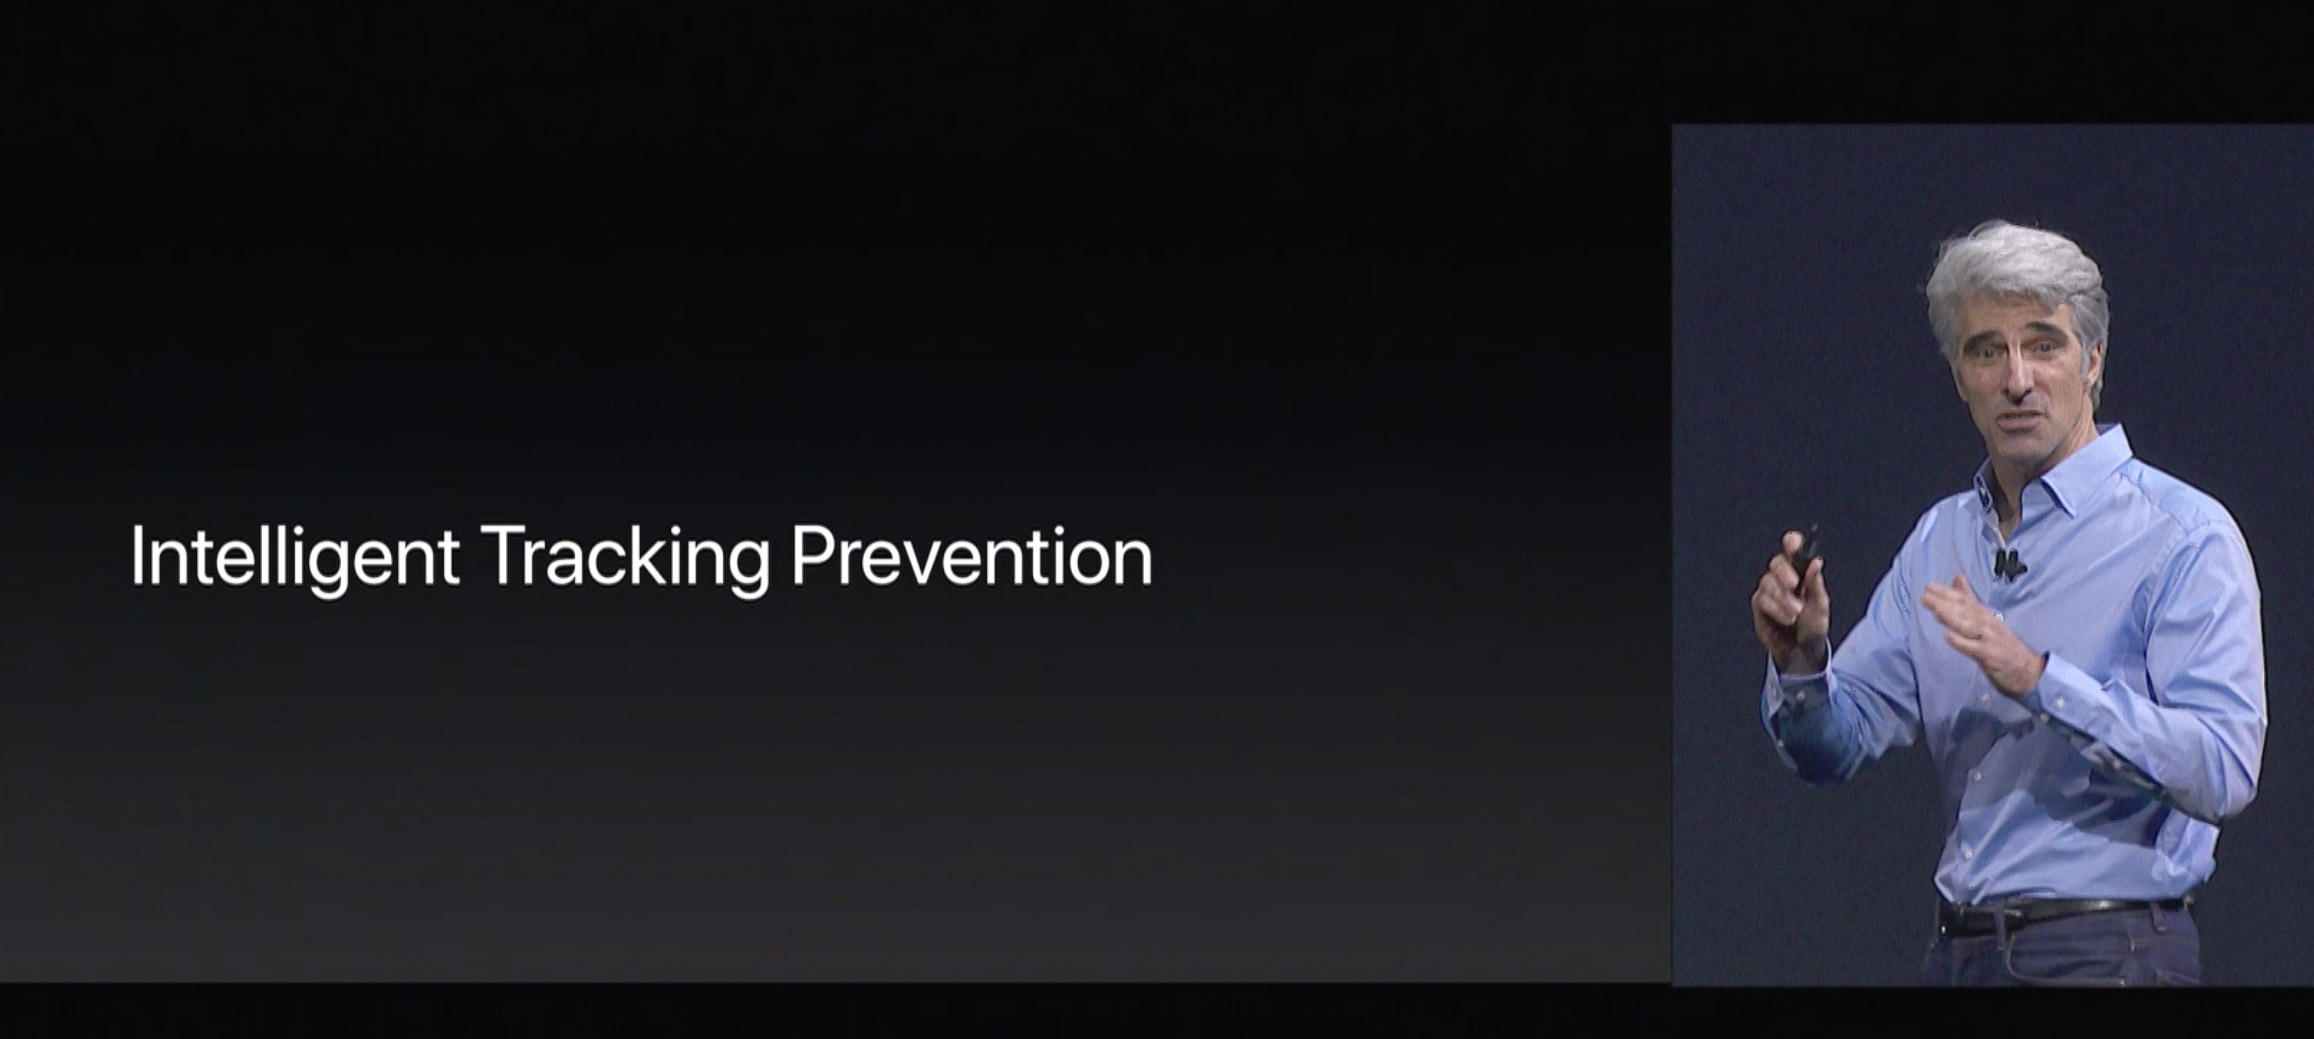 Apple software Senior Vice President Craig Federighi announces Safari's intelligent tracking prevention in June 2017 at an Apple conference.